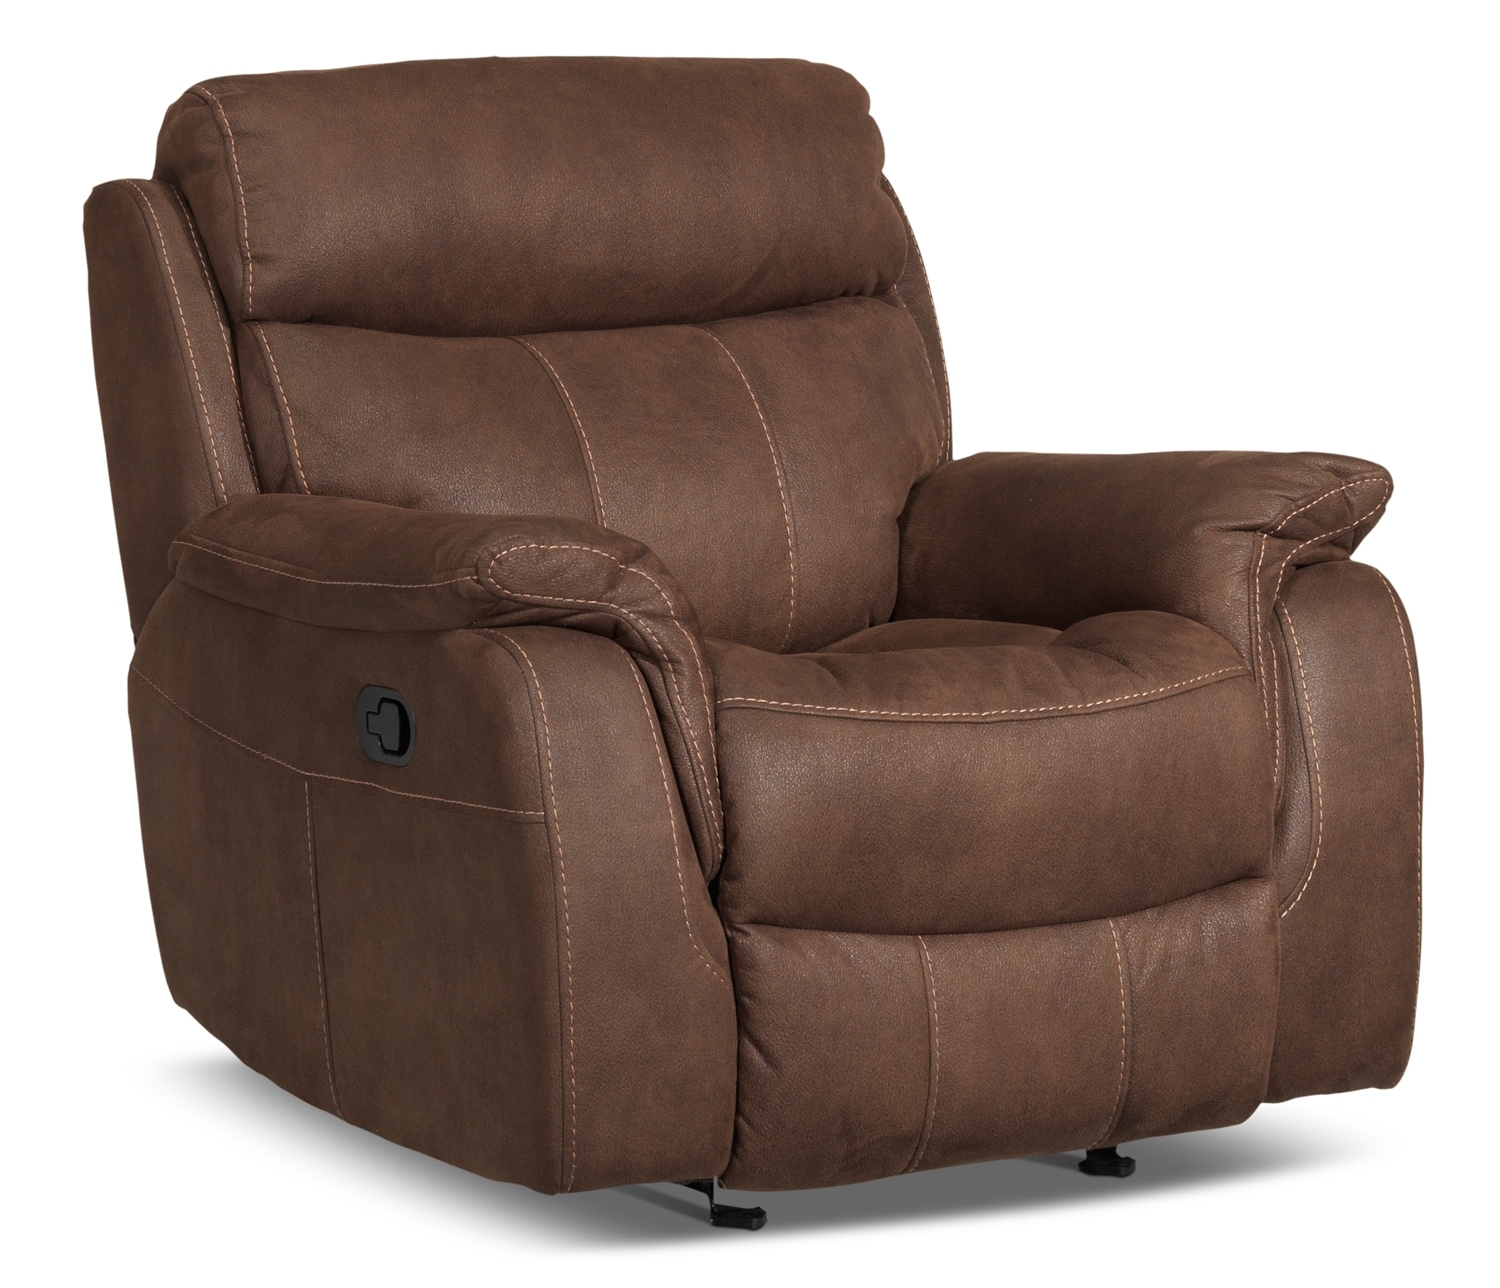 Morrow Recliner - Saddle Brown